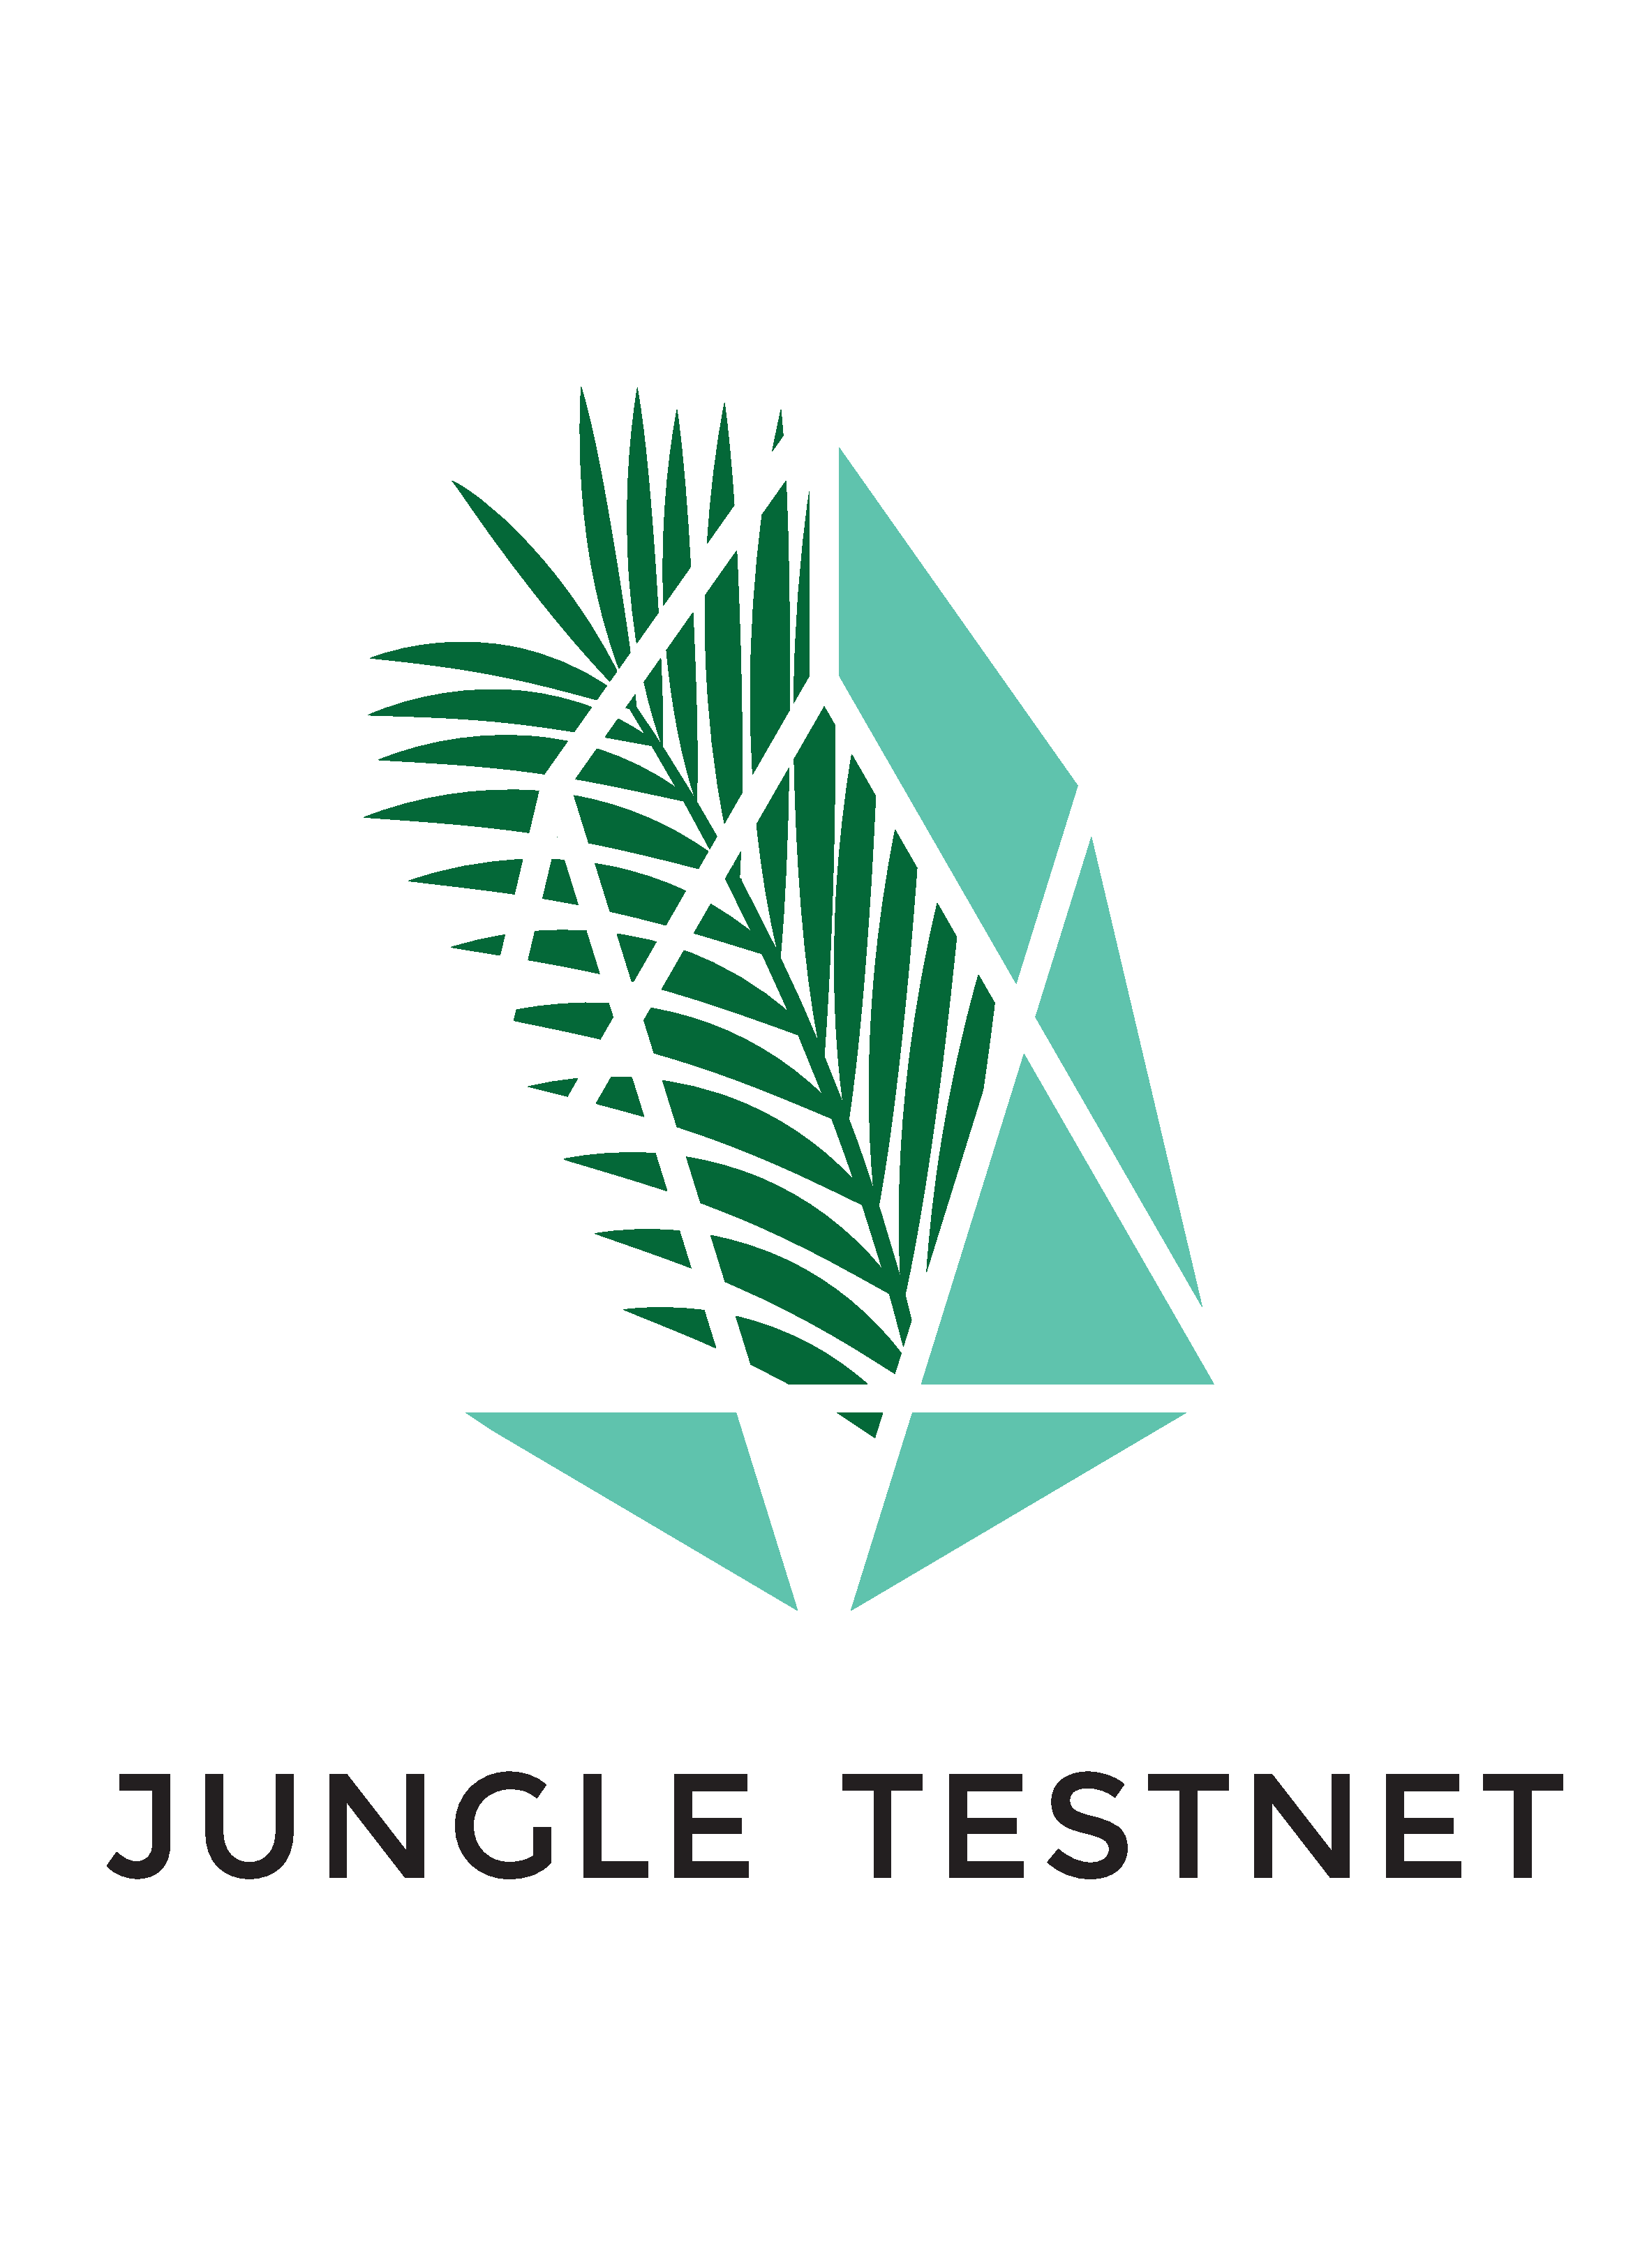 Jungle Testnet